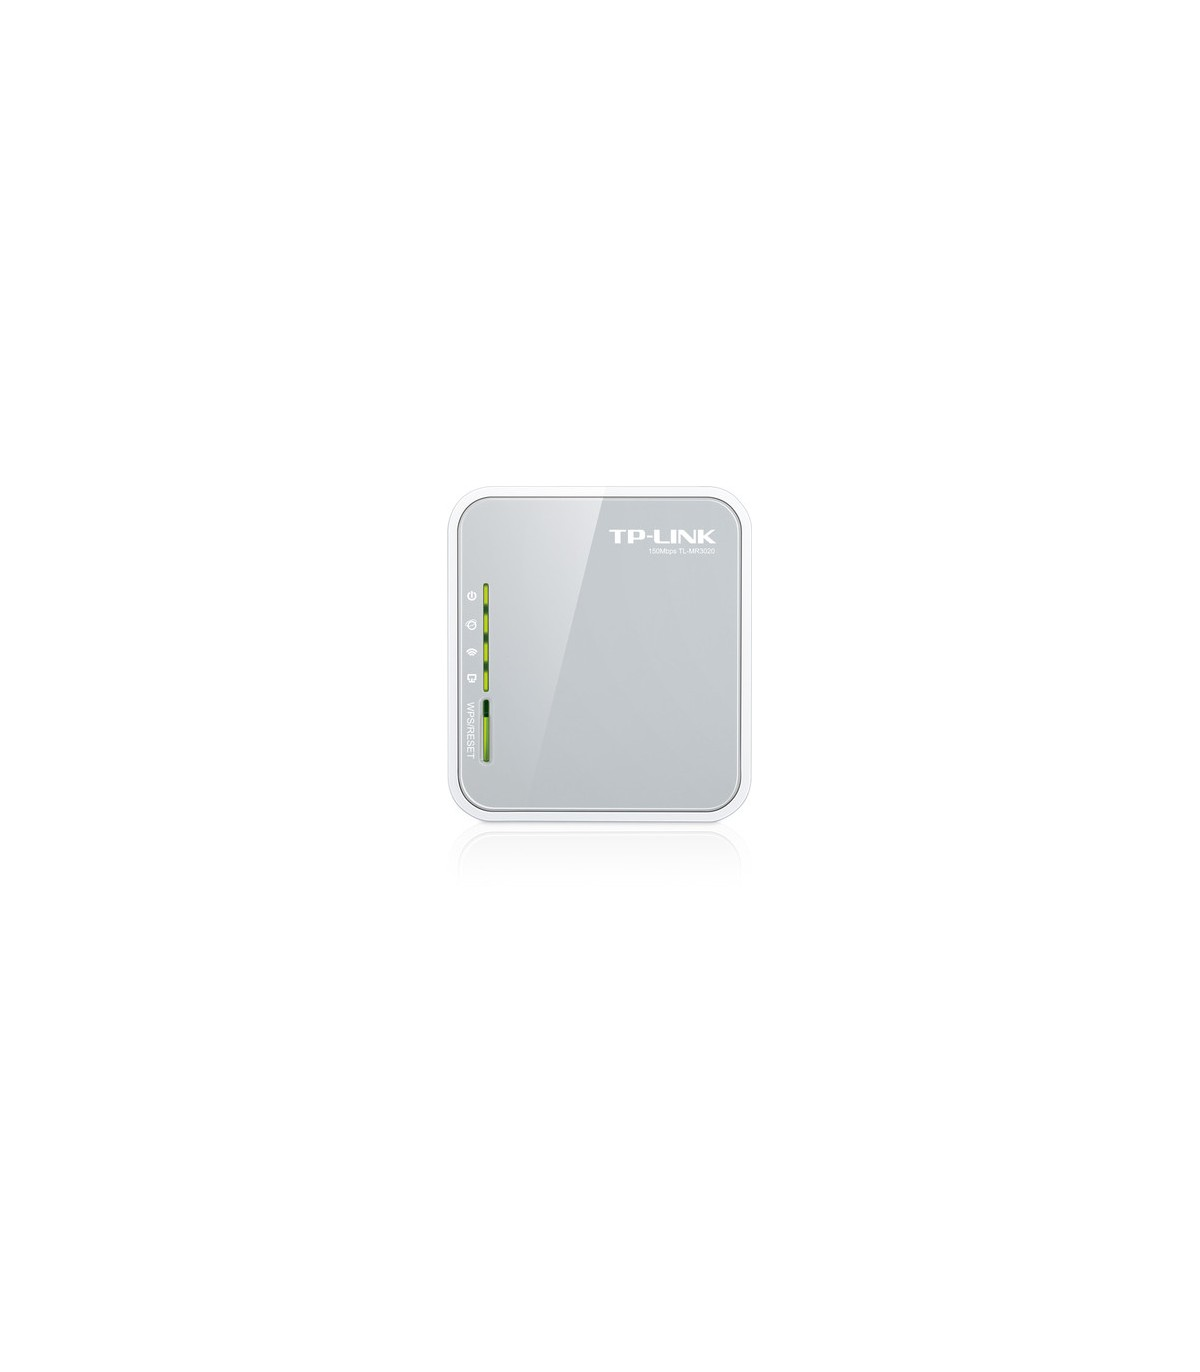 Wireless router tp-link n150 tl-mr3020 3g/3 75g